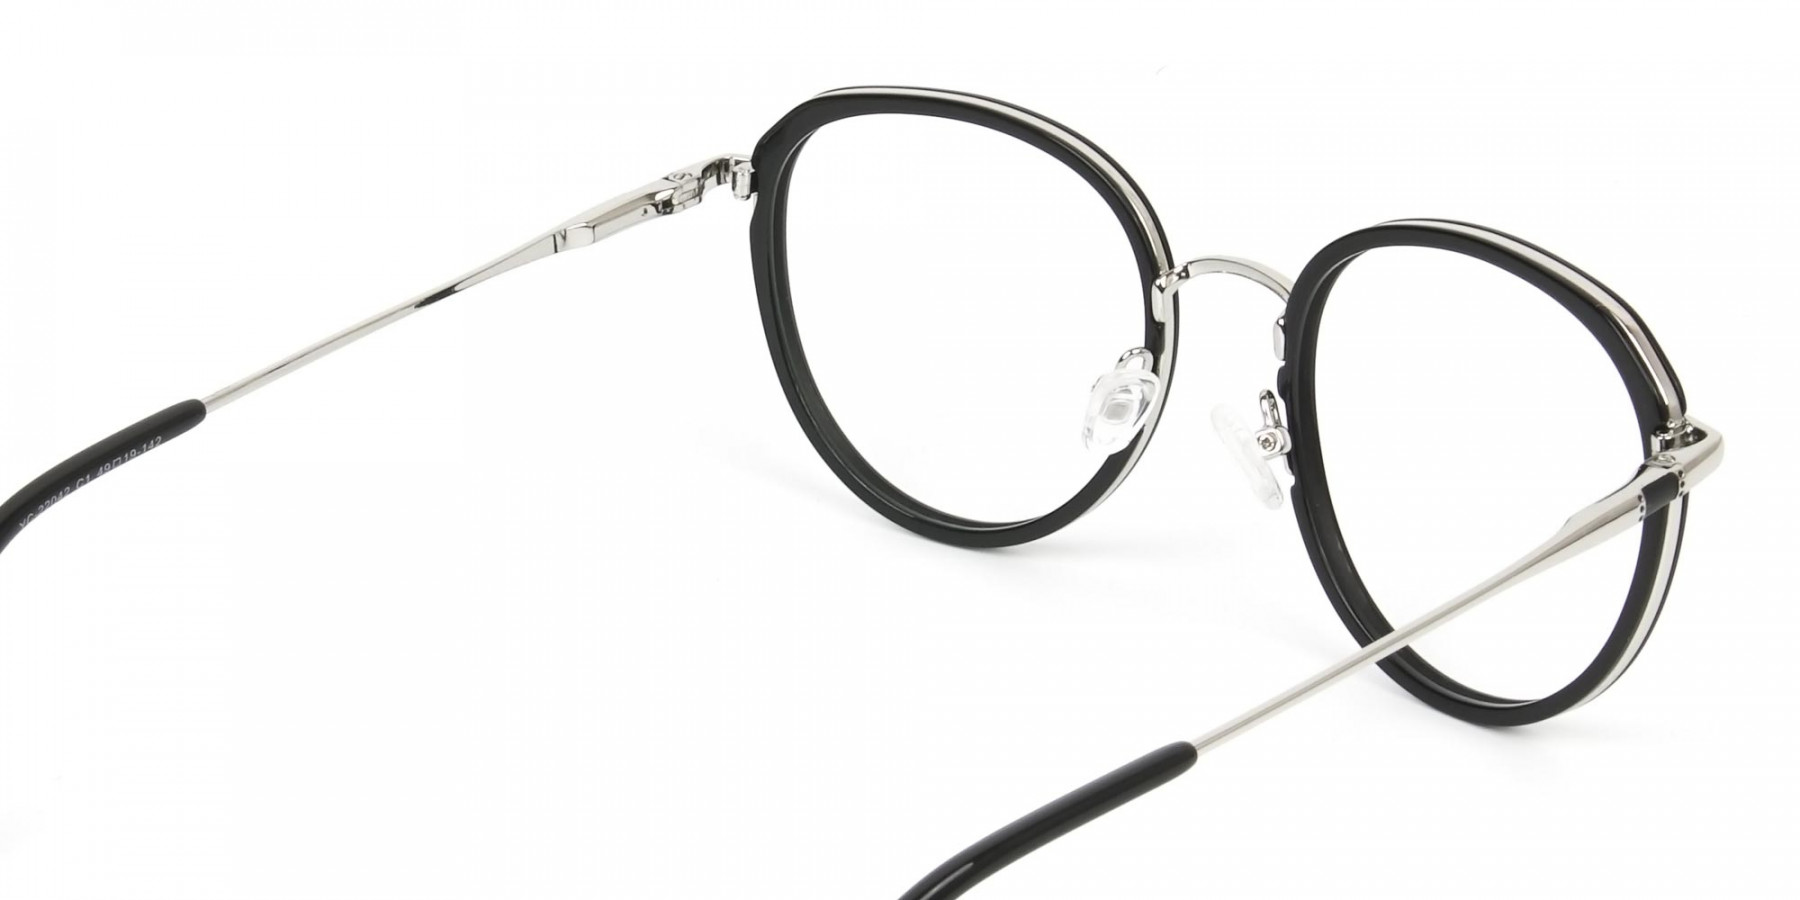 Metal Silver and Black Thick Round Frame Glasses - 1